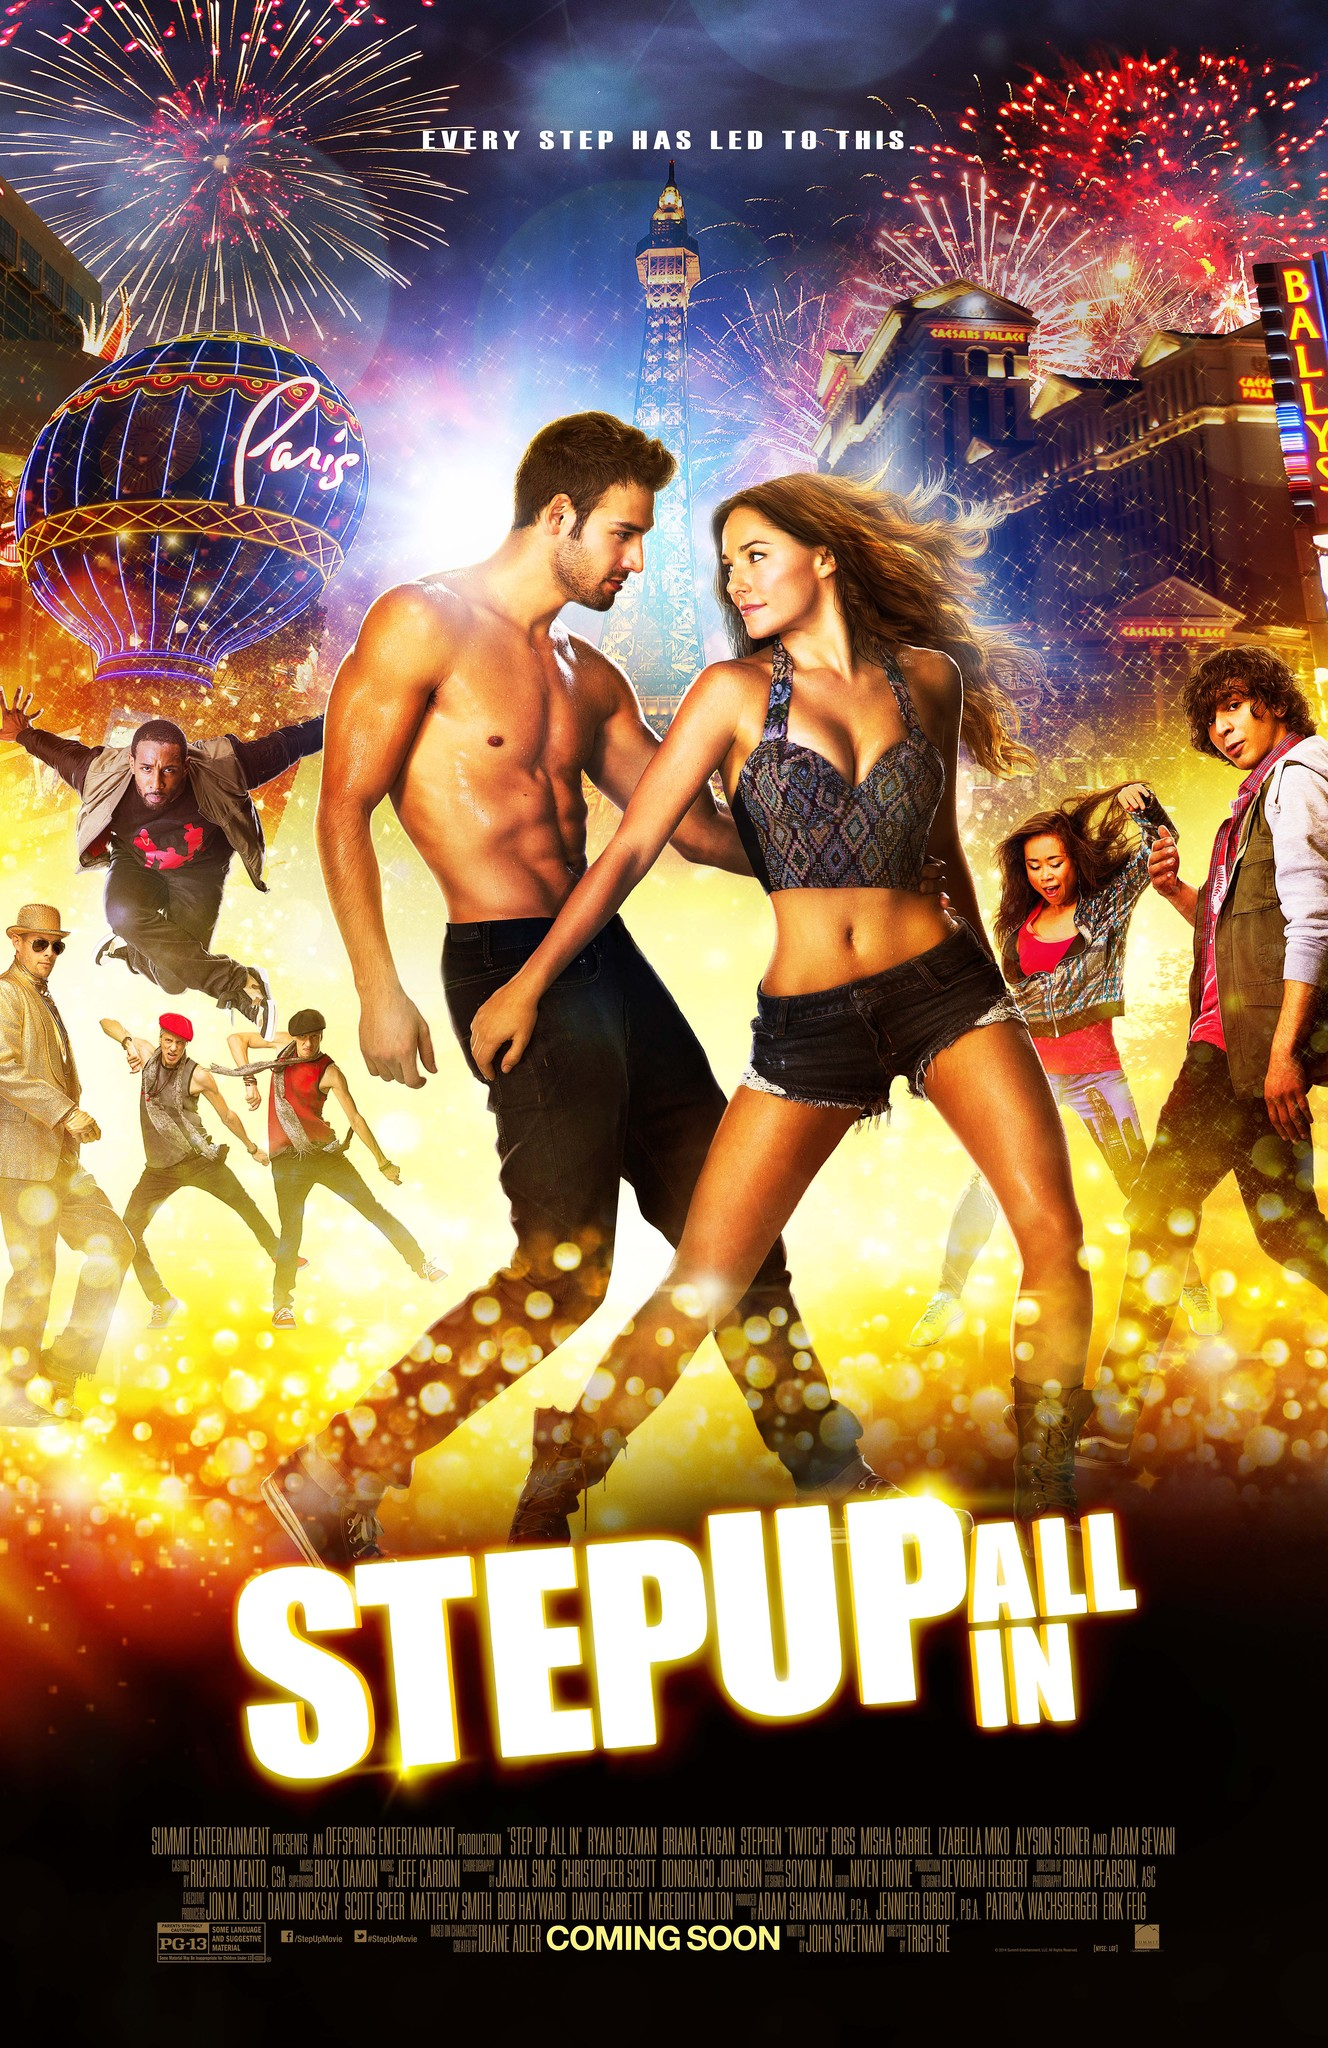 (2014) All-stars from the previous Step Up installments come together in glittering Las Vegas, battling for a victory that could define their dreams and their careers. -